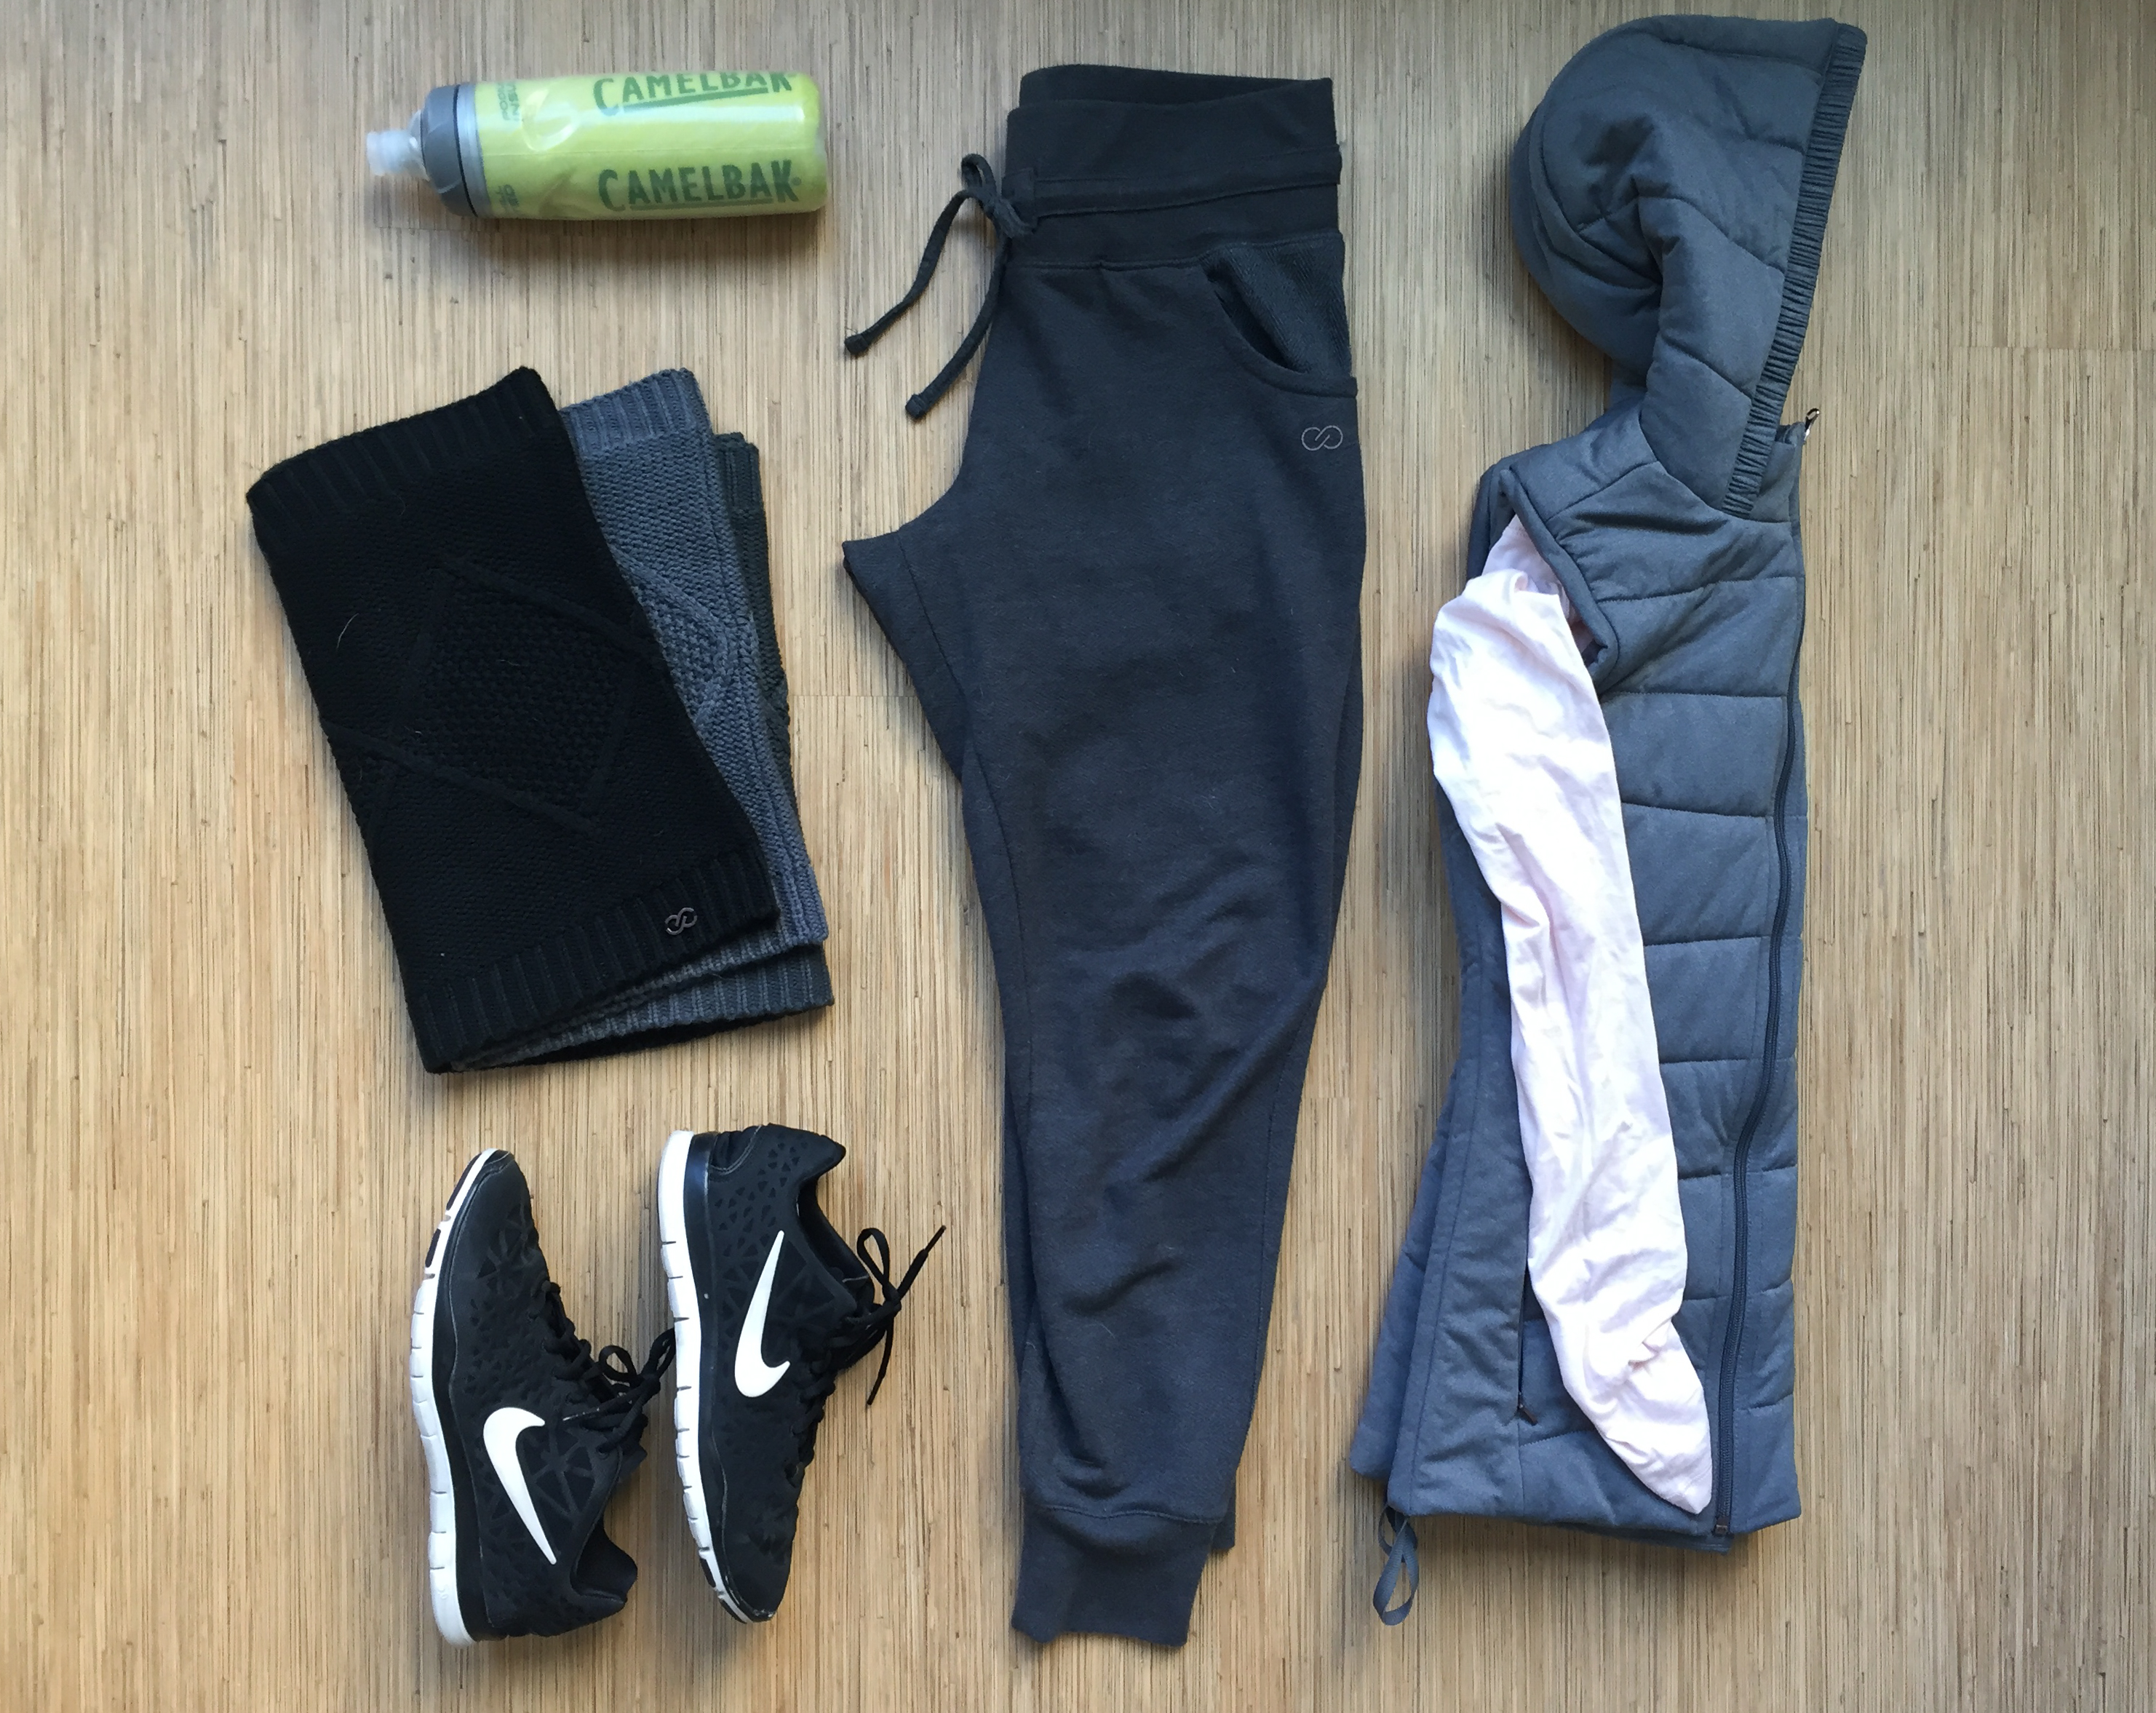 3 Post Winter Workout Essentials with CALIA by Carrie.